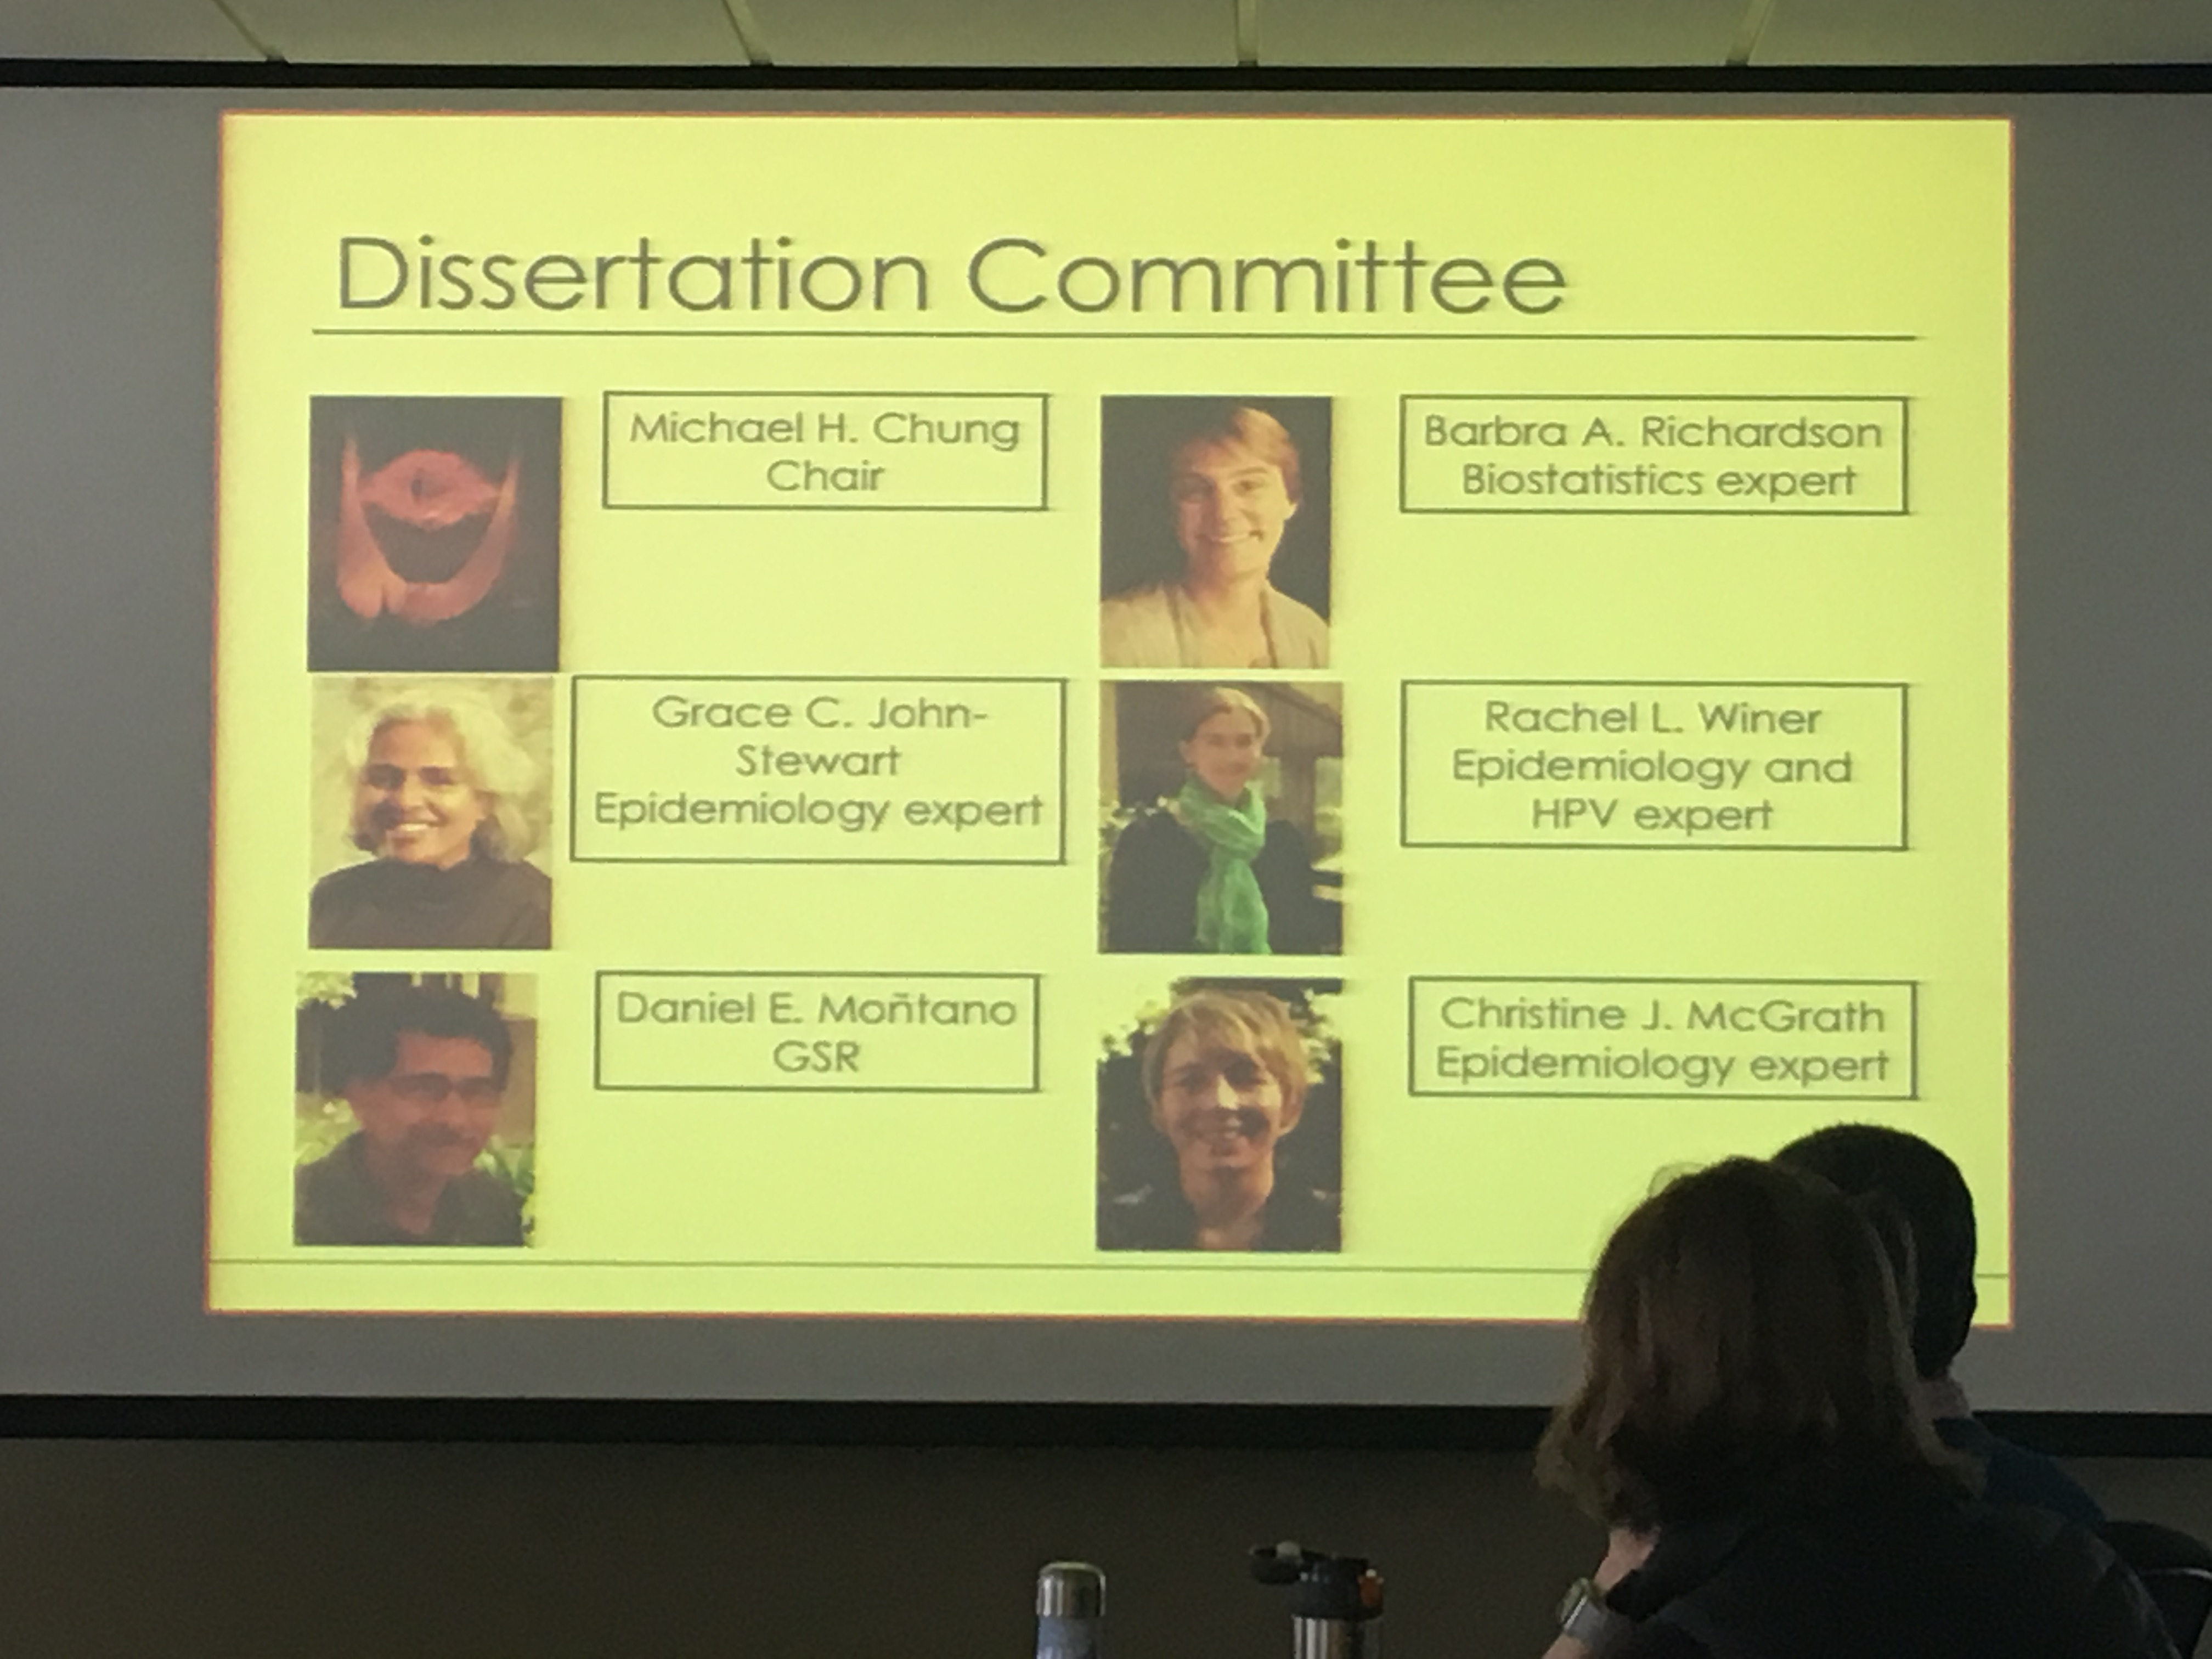 Congratulations on defence of dissertation